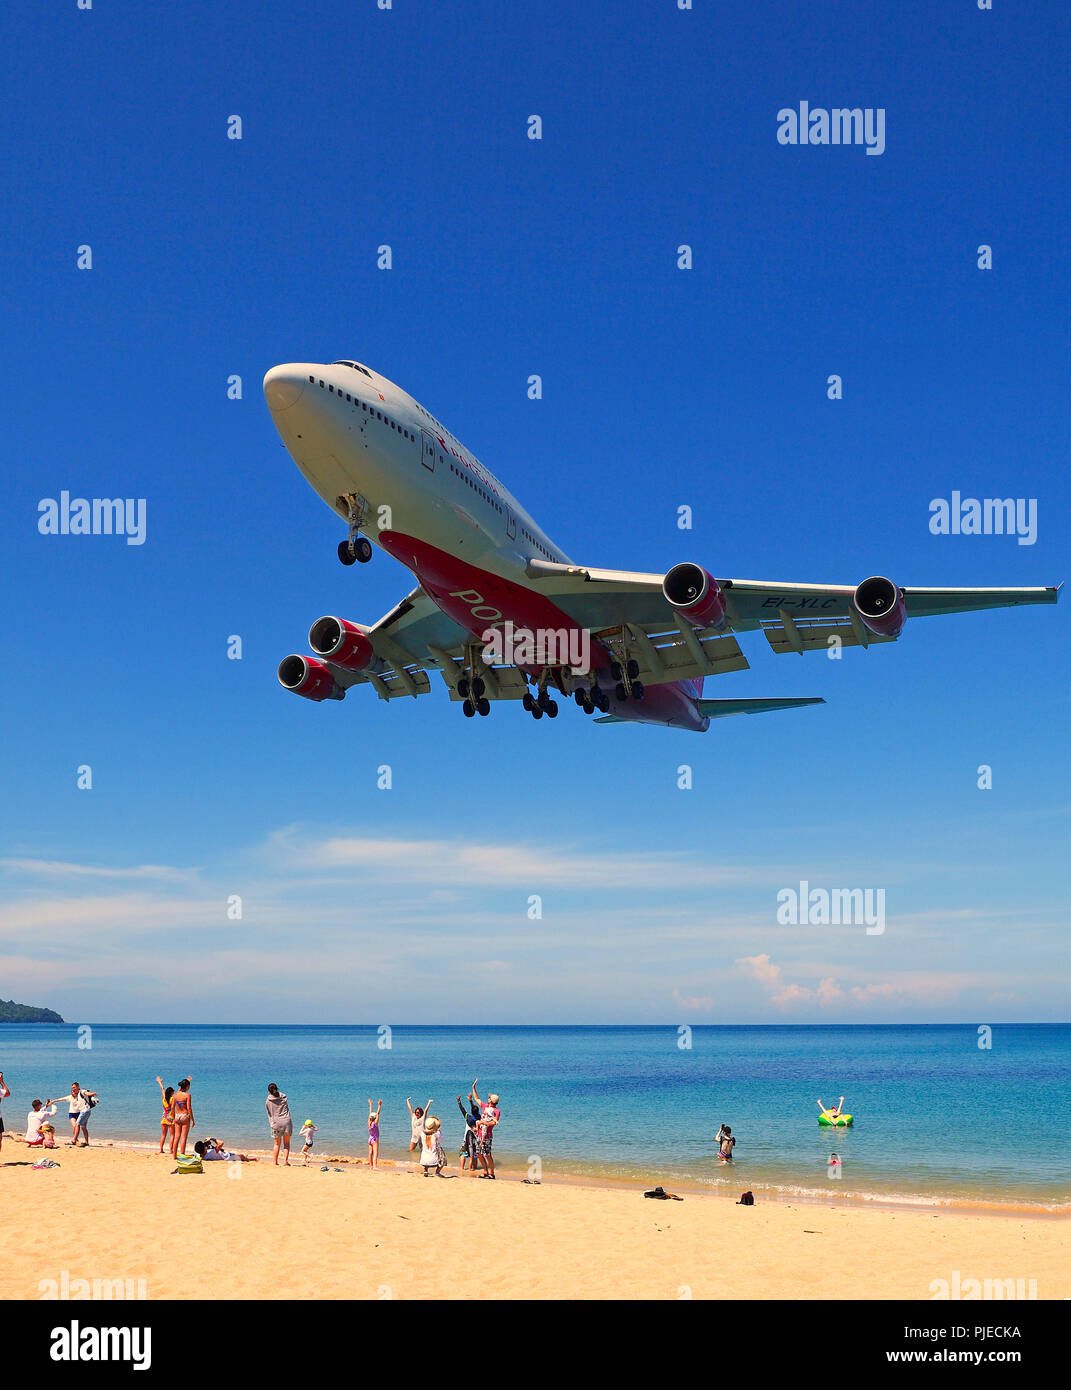 Boeing 747, airplane of the society of Rossia in the land flight, May Kao Beach, Phuket, Thailand, Boeing 747 , Flugzeug der Gesellschaft Rossia im La - Stock Image